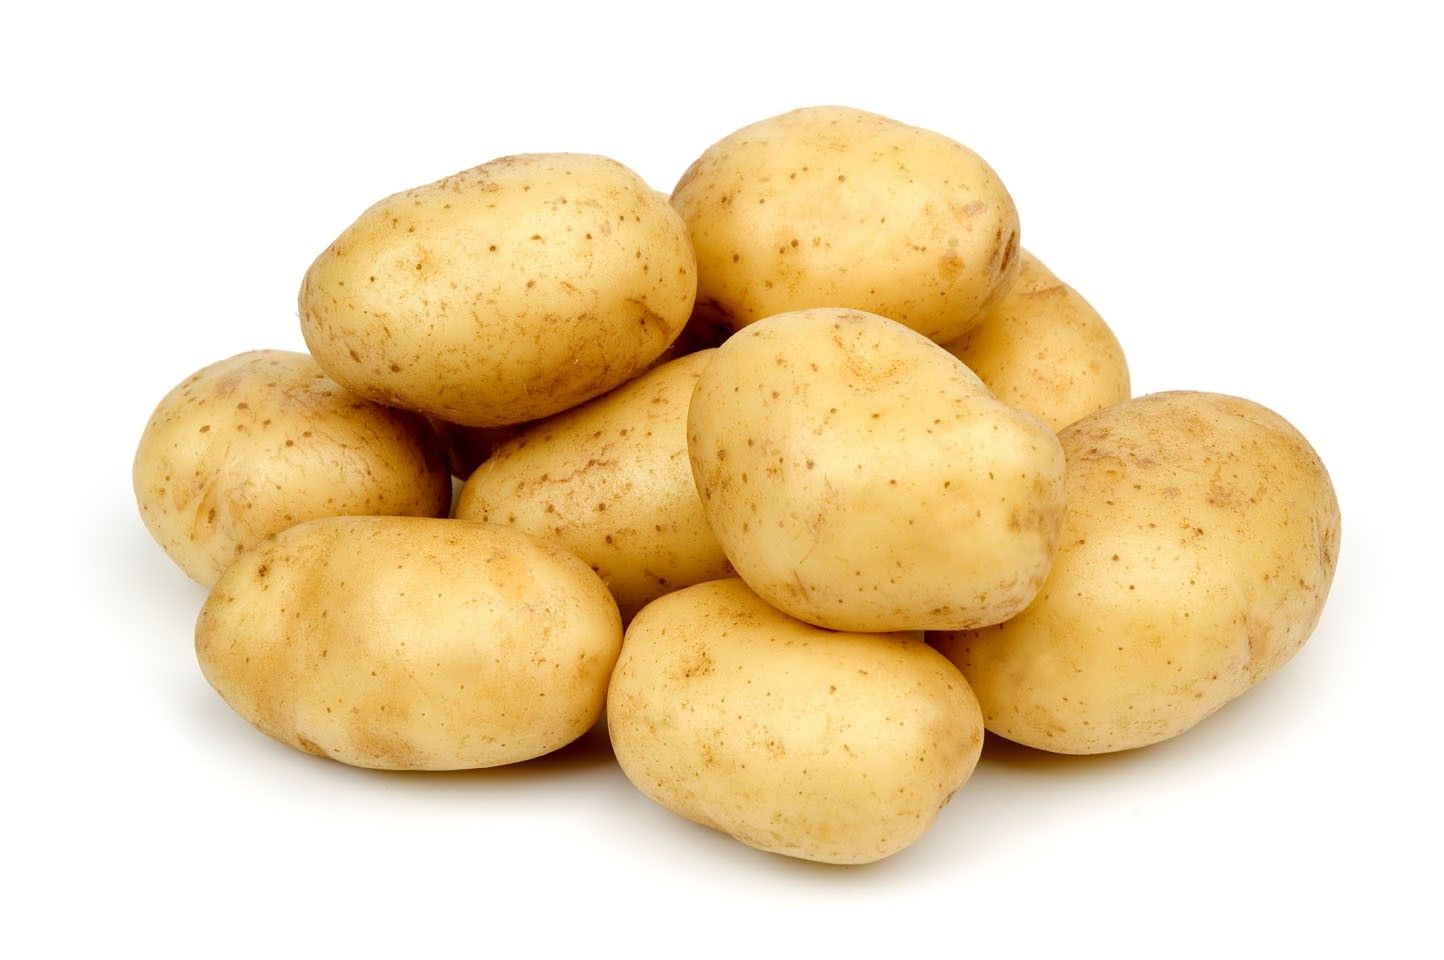 24 Amazing Benefits of Potatoes For Skin, Hair And Health